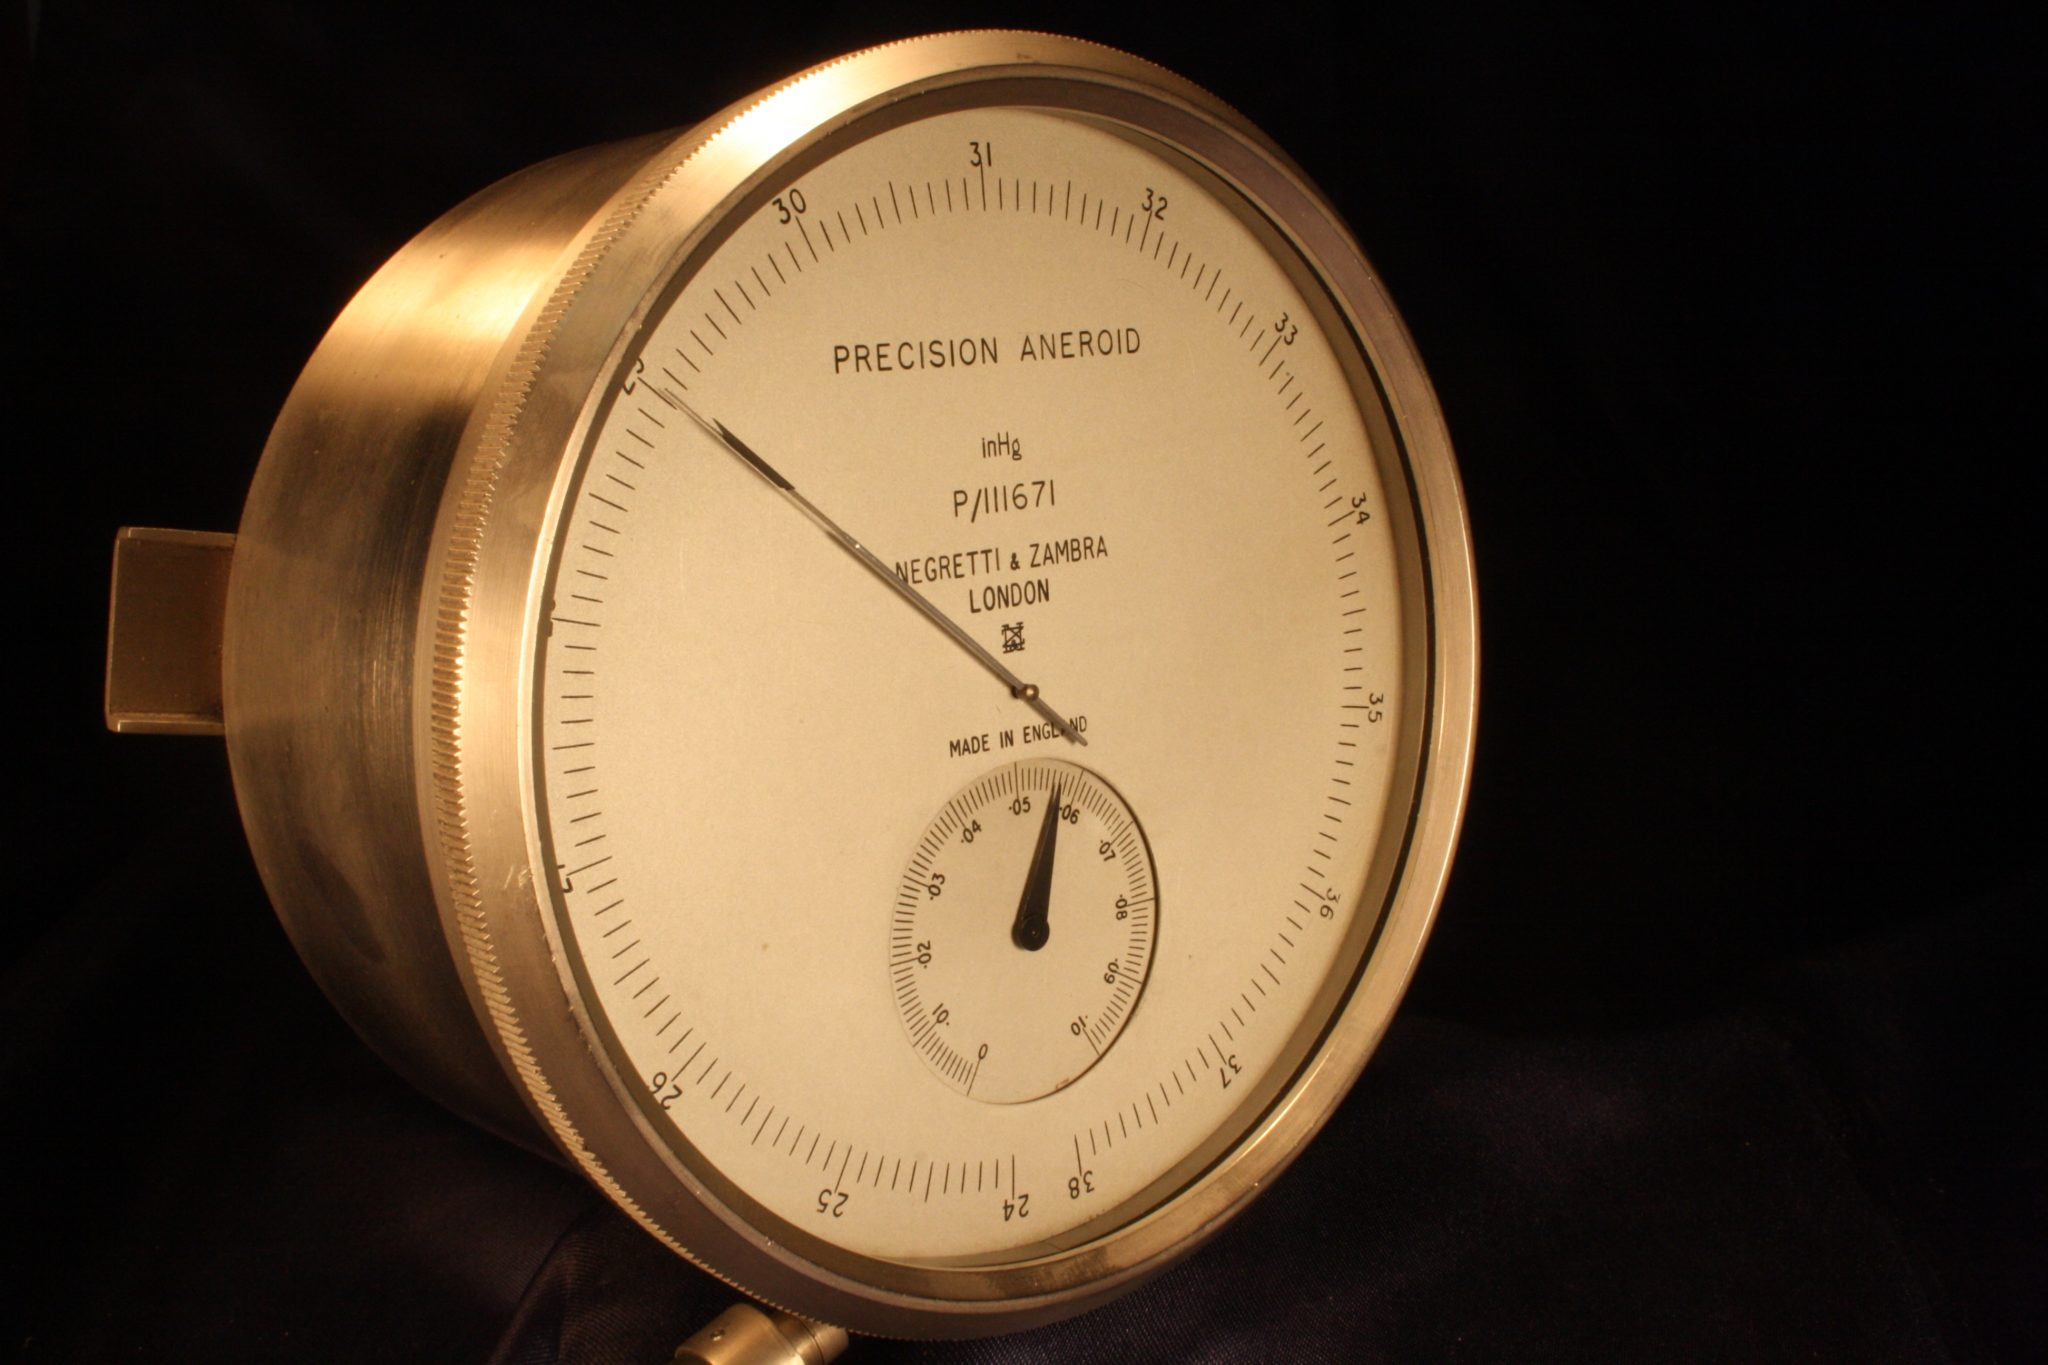 Image of Negretti & Zambra Precision Aneroid Surveying Barometer P/111671